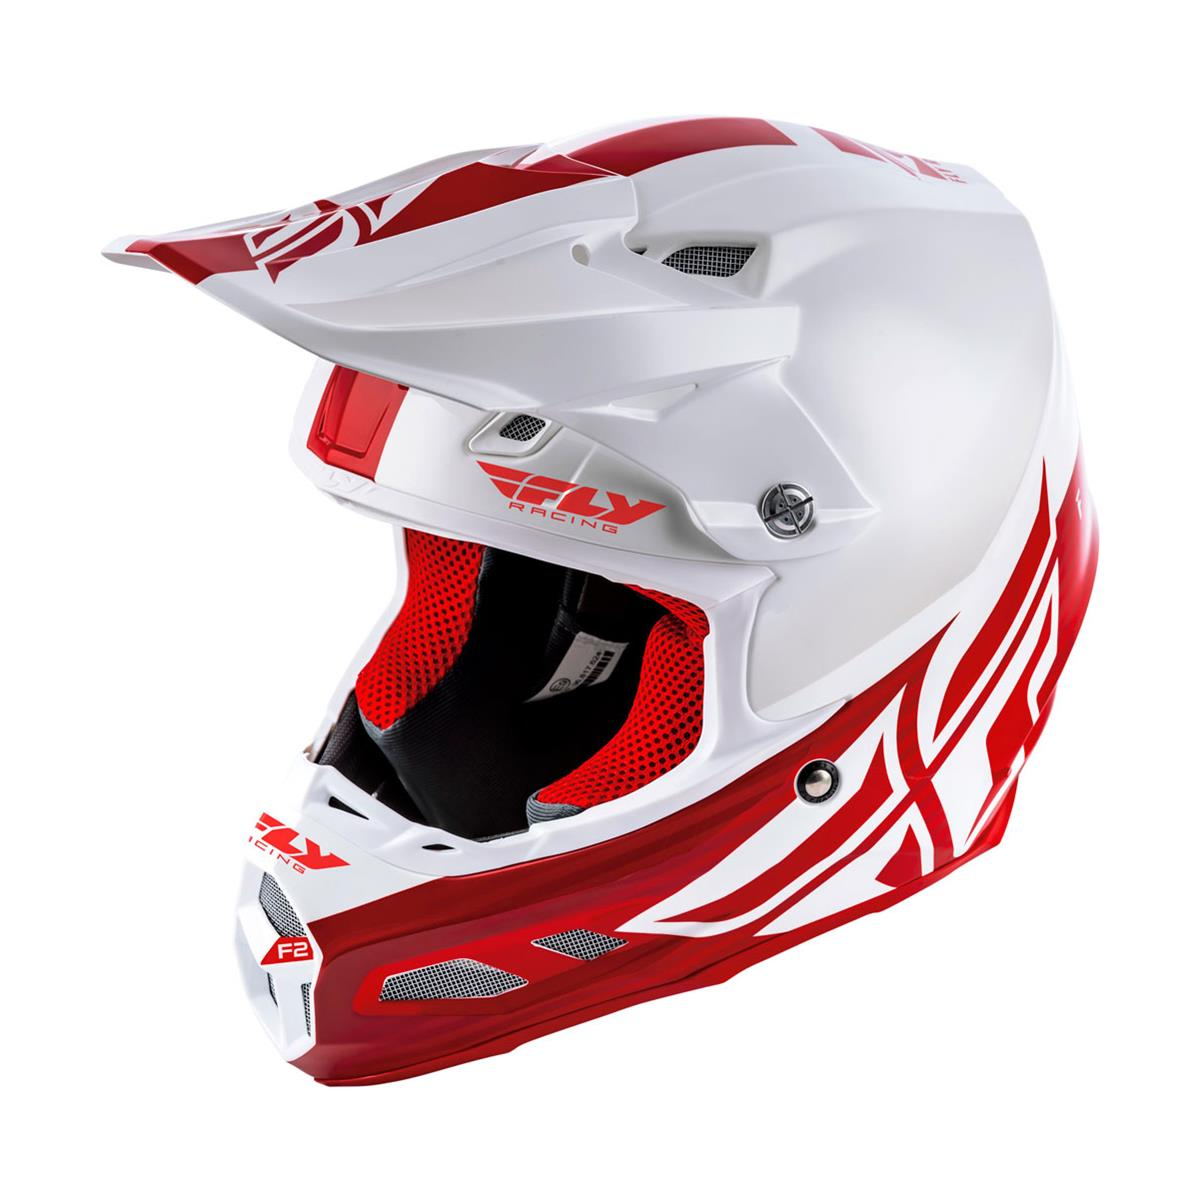 Fly Racing Helm F2 Carbon MIPS Weiß/Rot